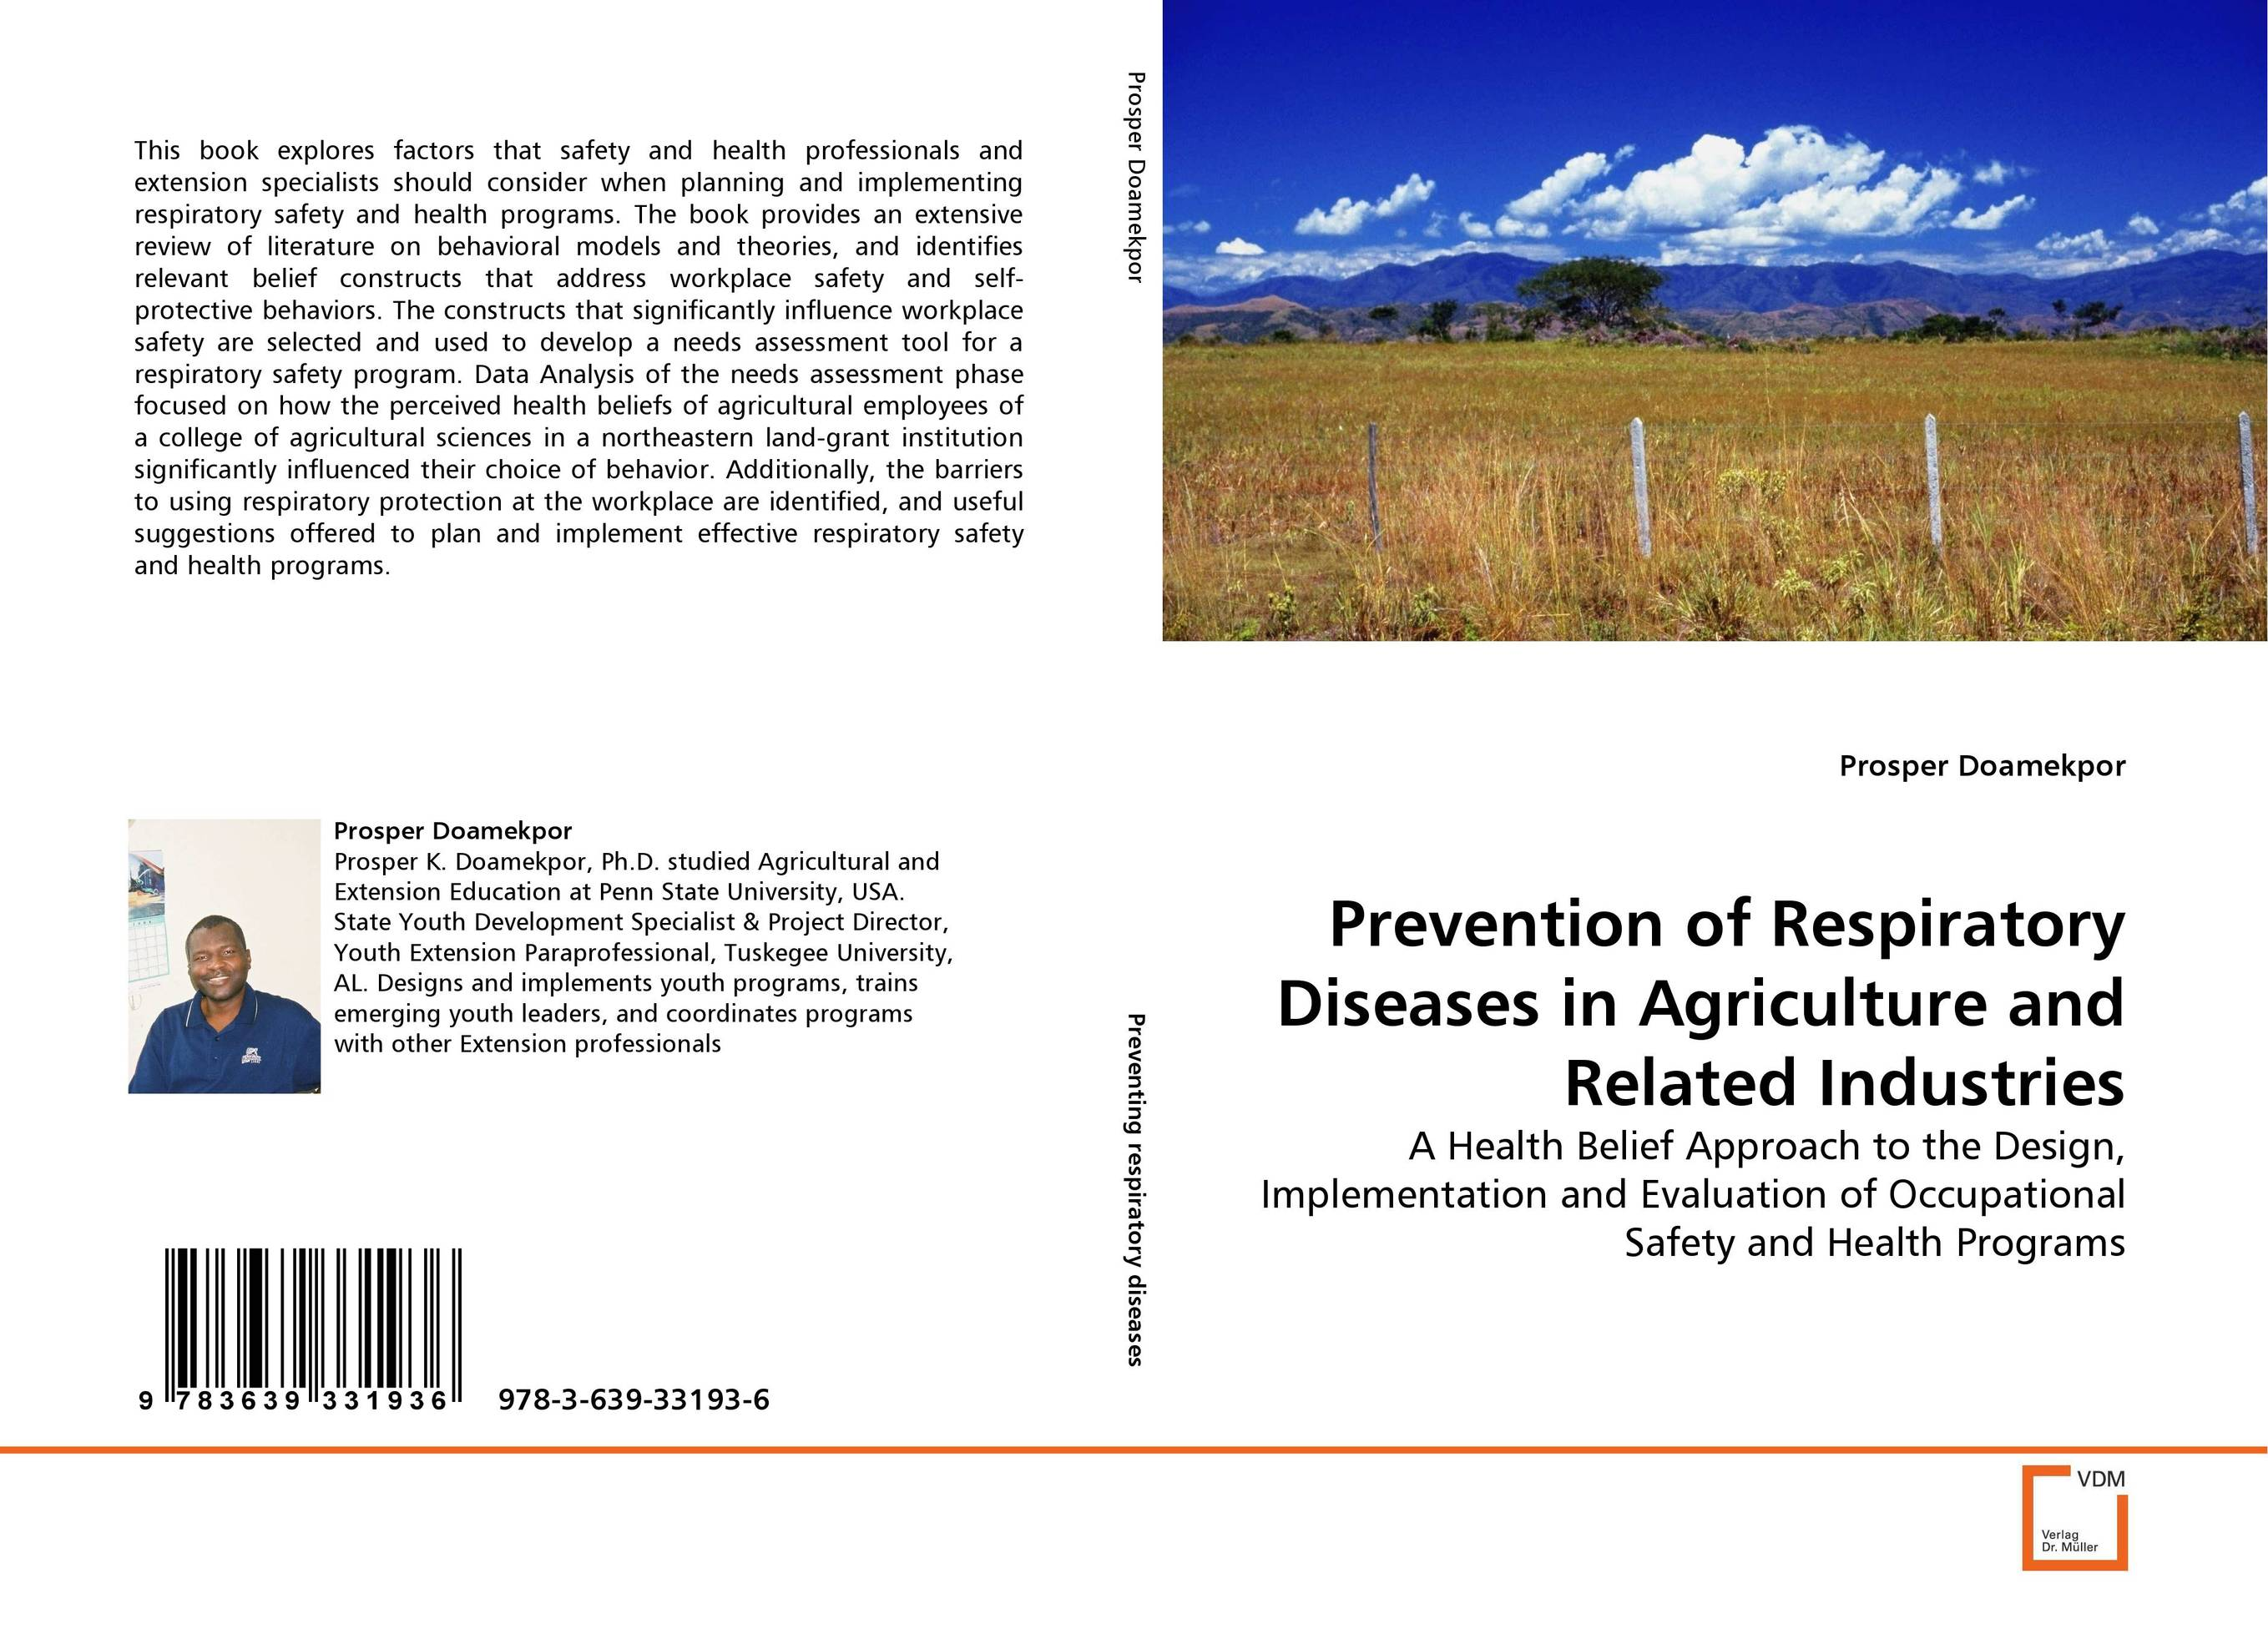 Prevention of Respiratory Diseases in Agriculture and Related Industries